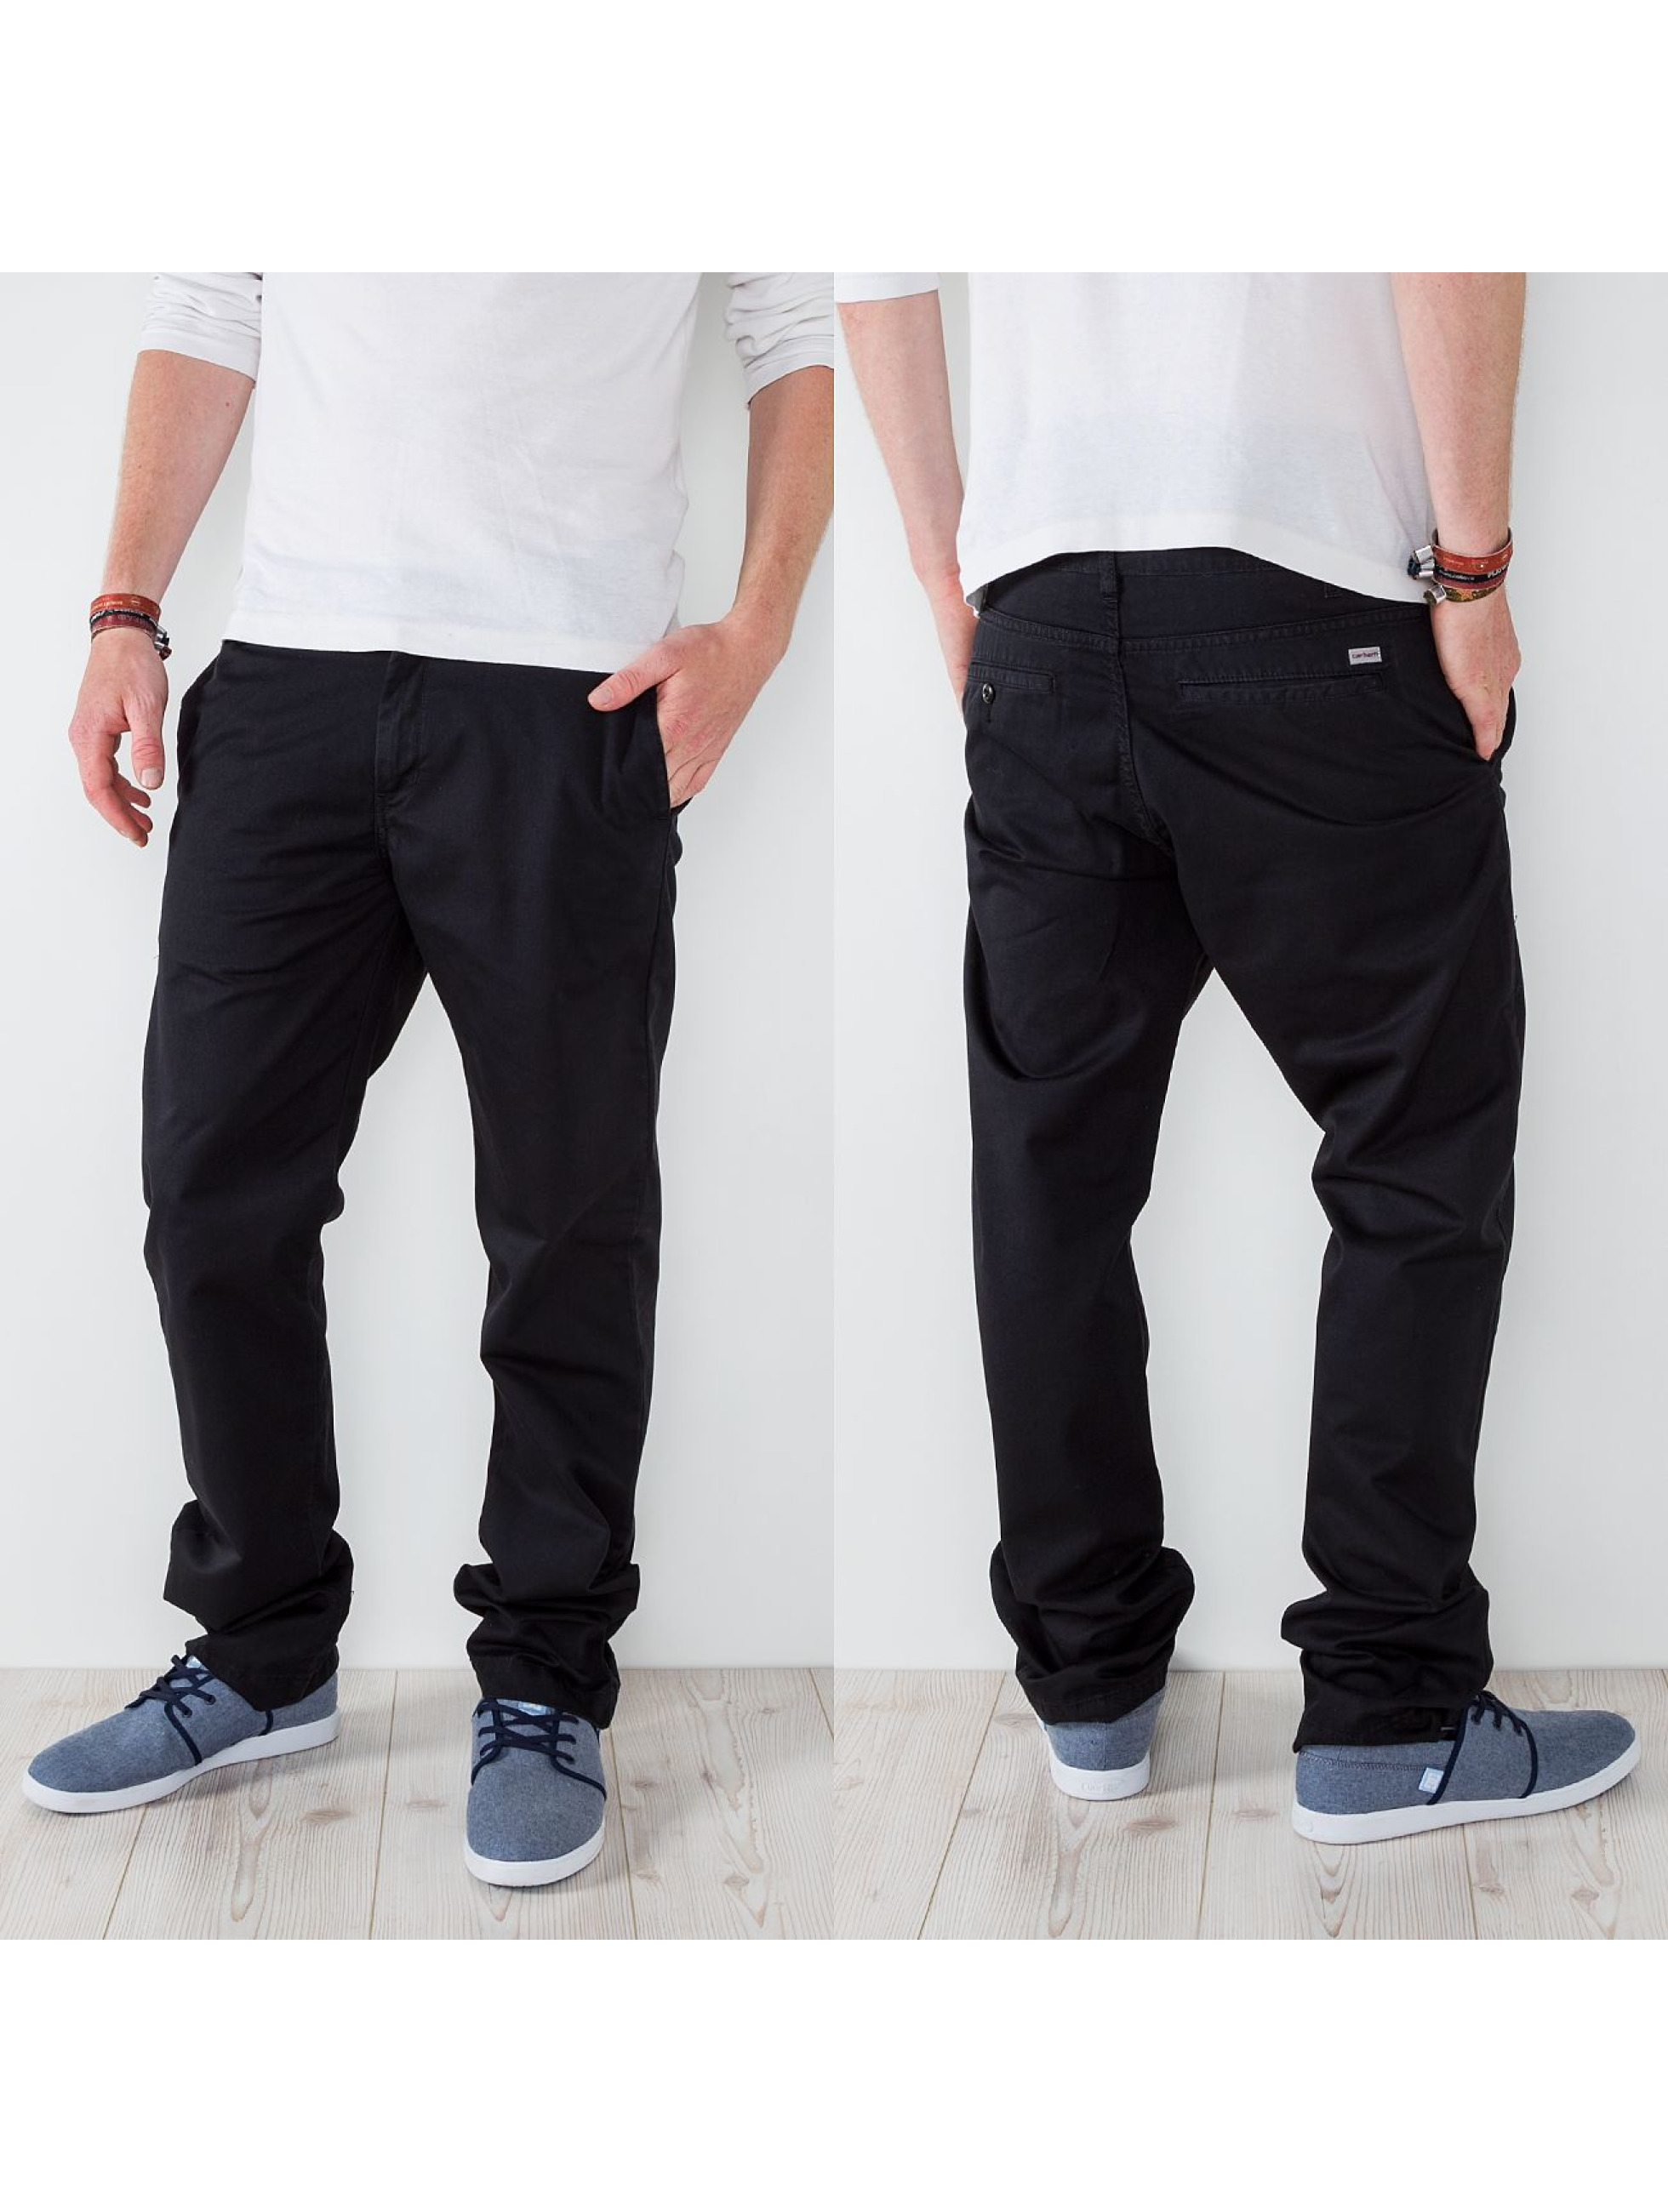 Carhartt WIP Chino Durango Regular Fit Station Chino schwarz